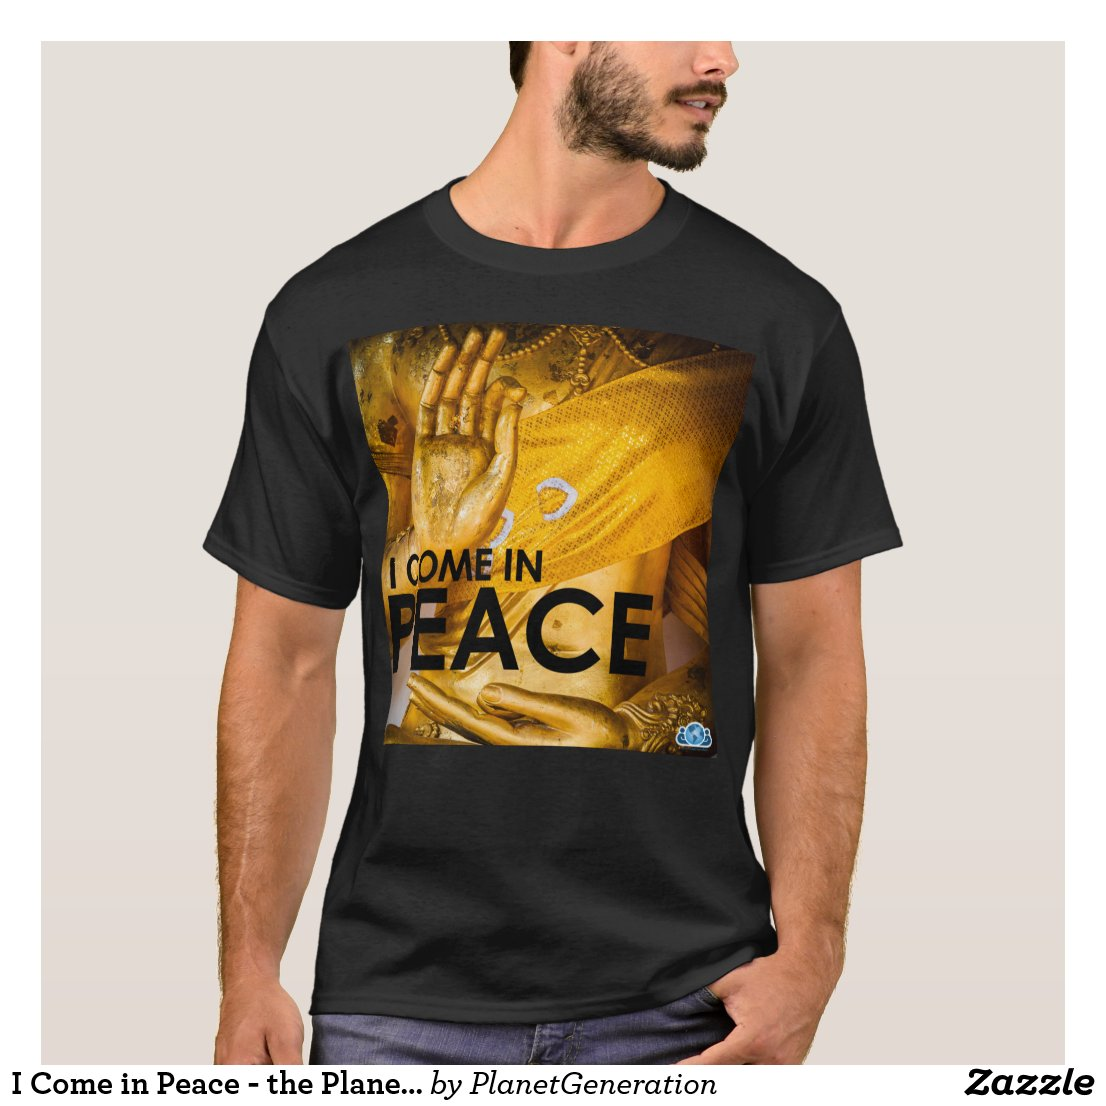 I Come in Peace - the Planet Generation T-shirt